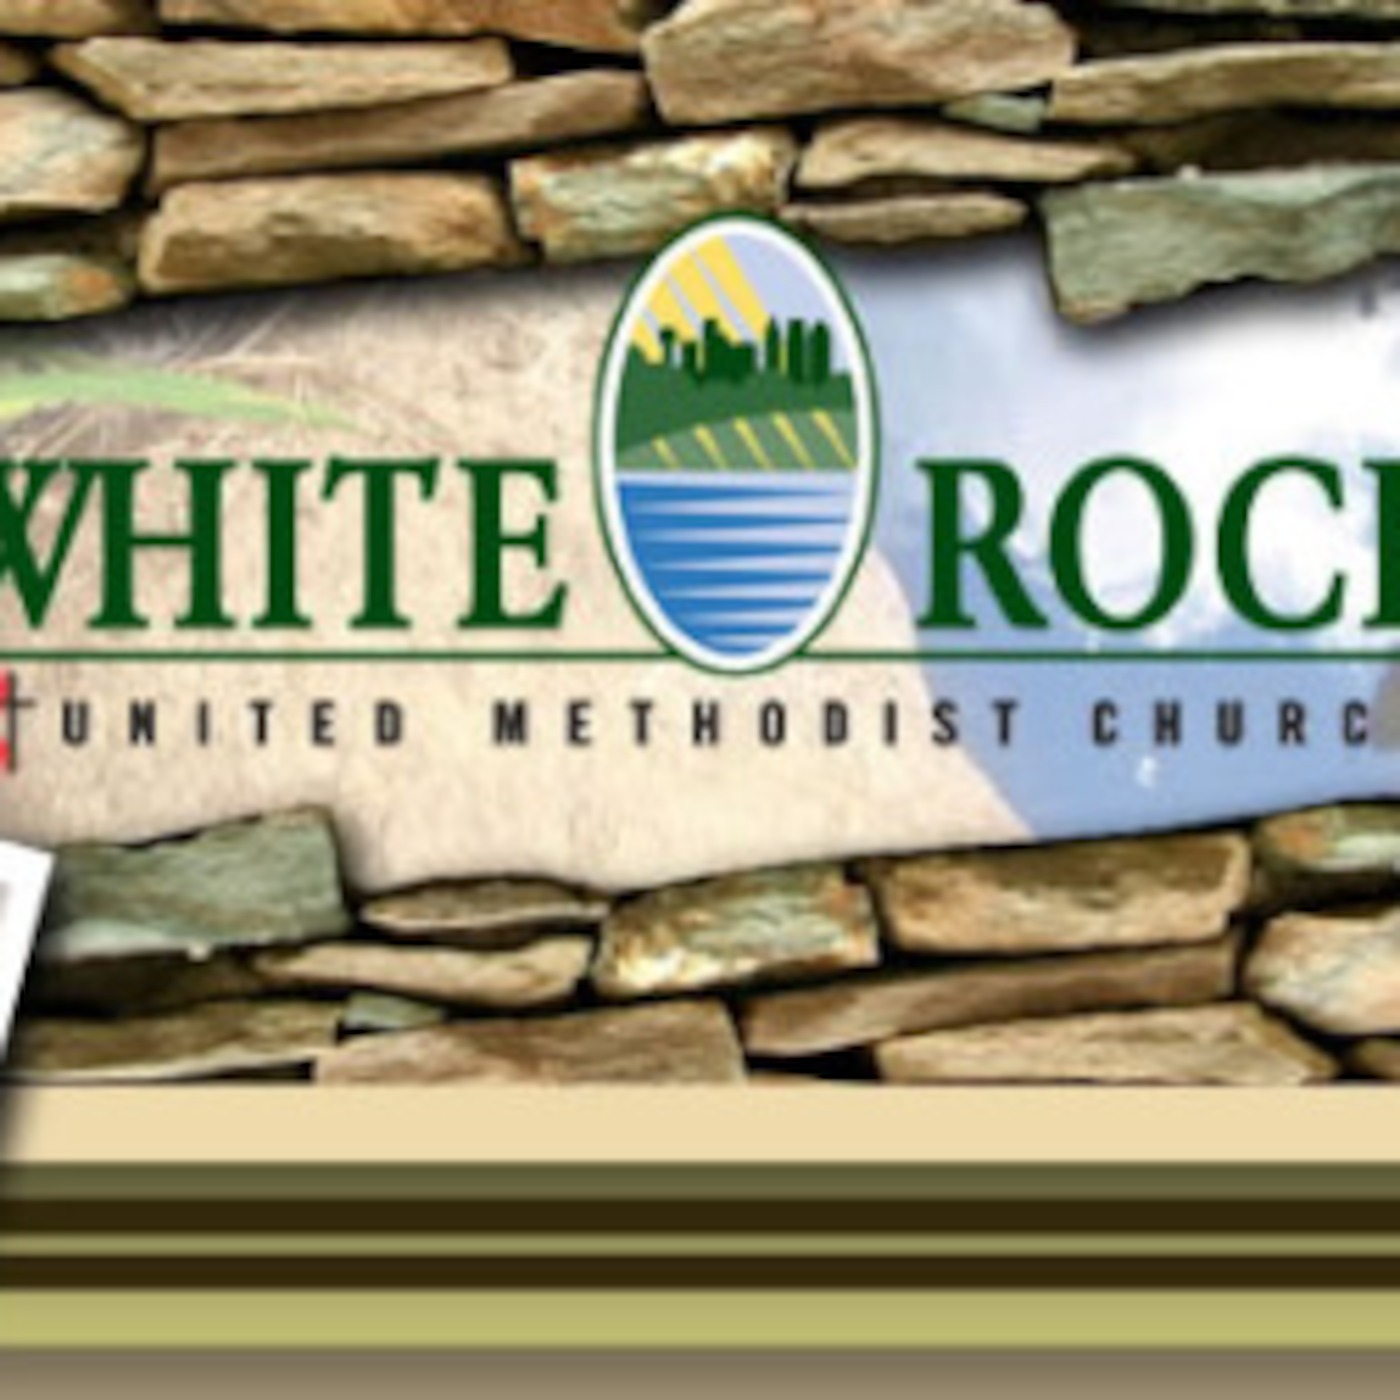 White Rock UMC's Podcast